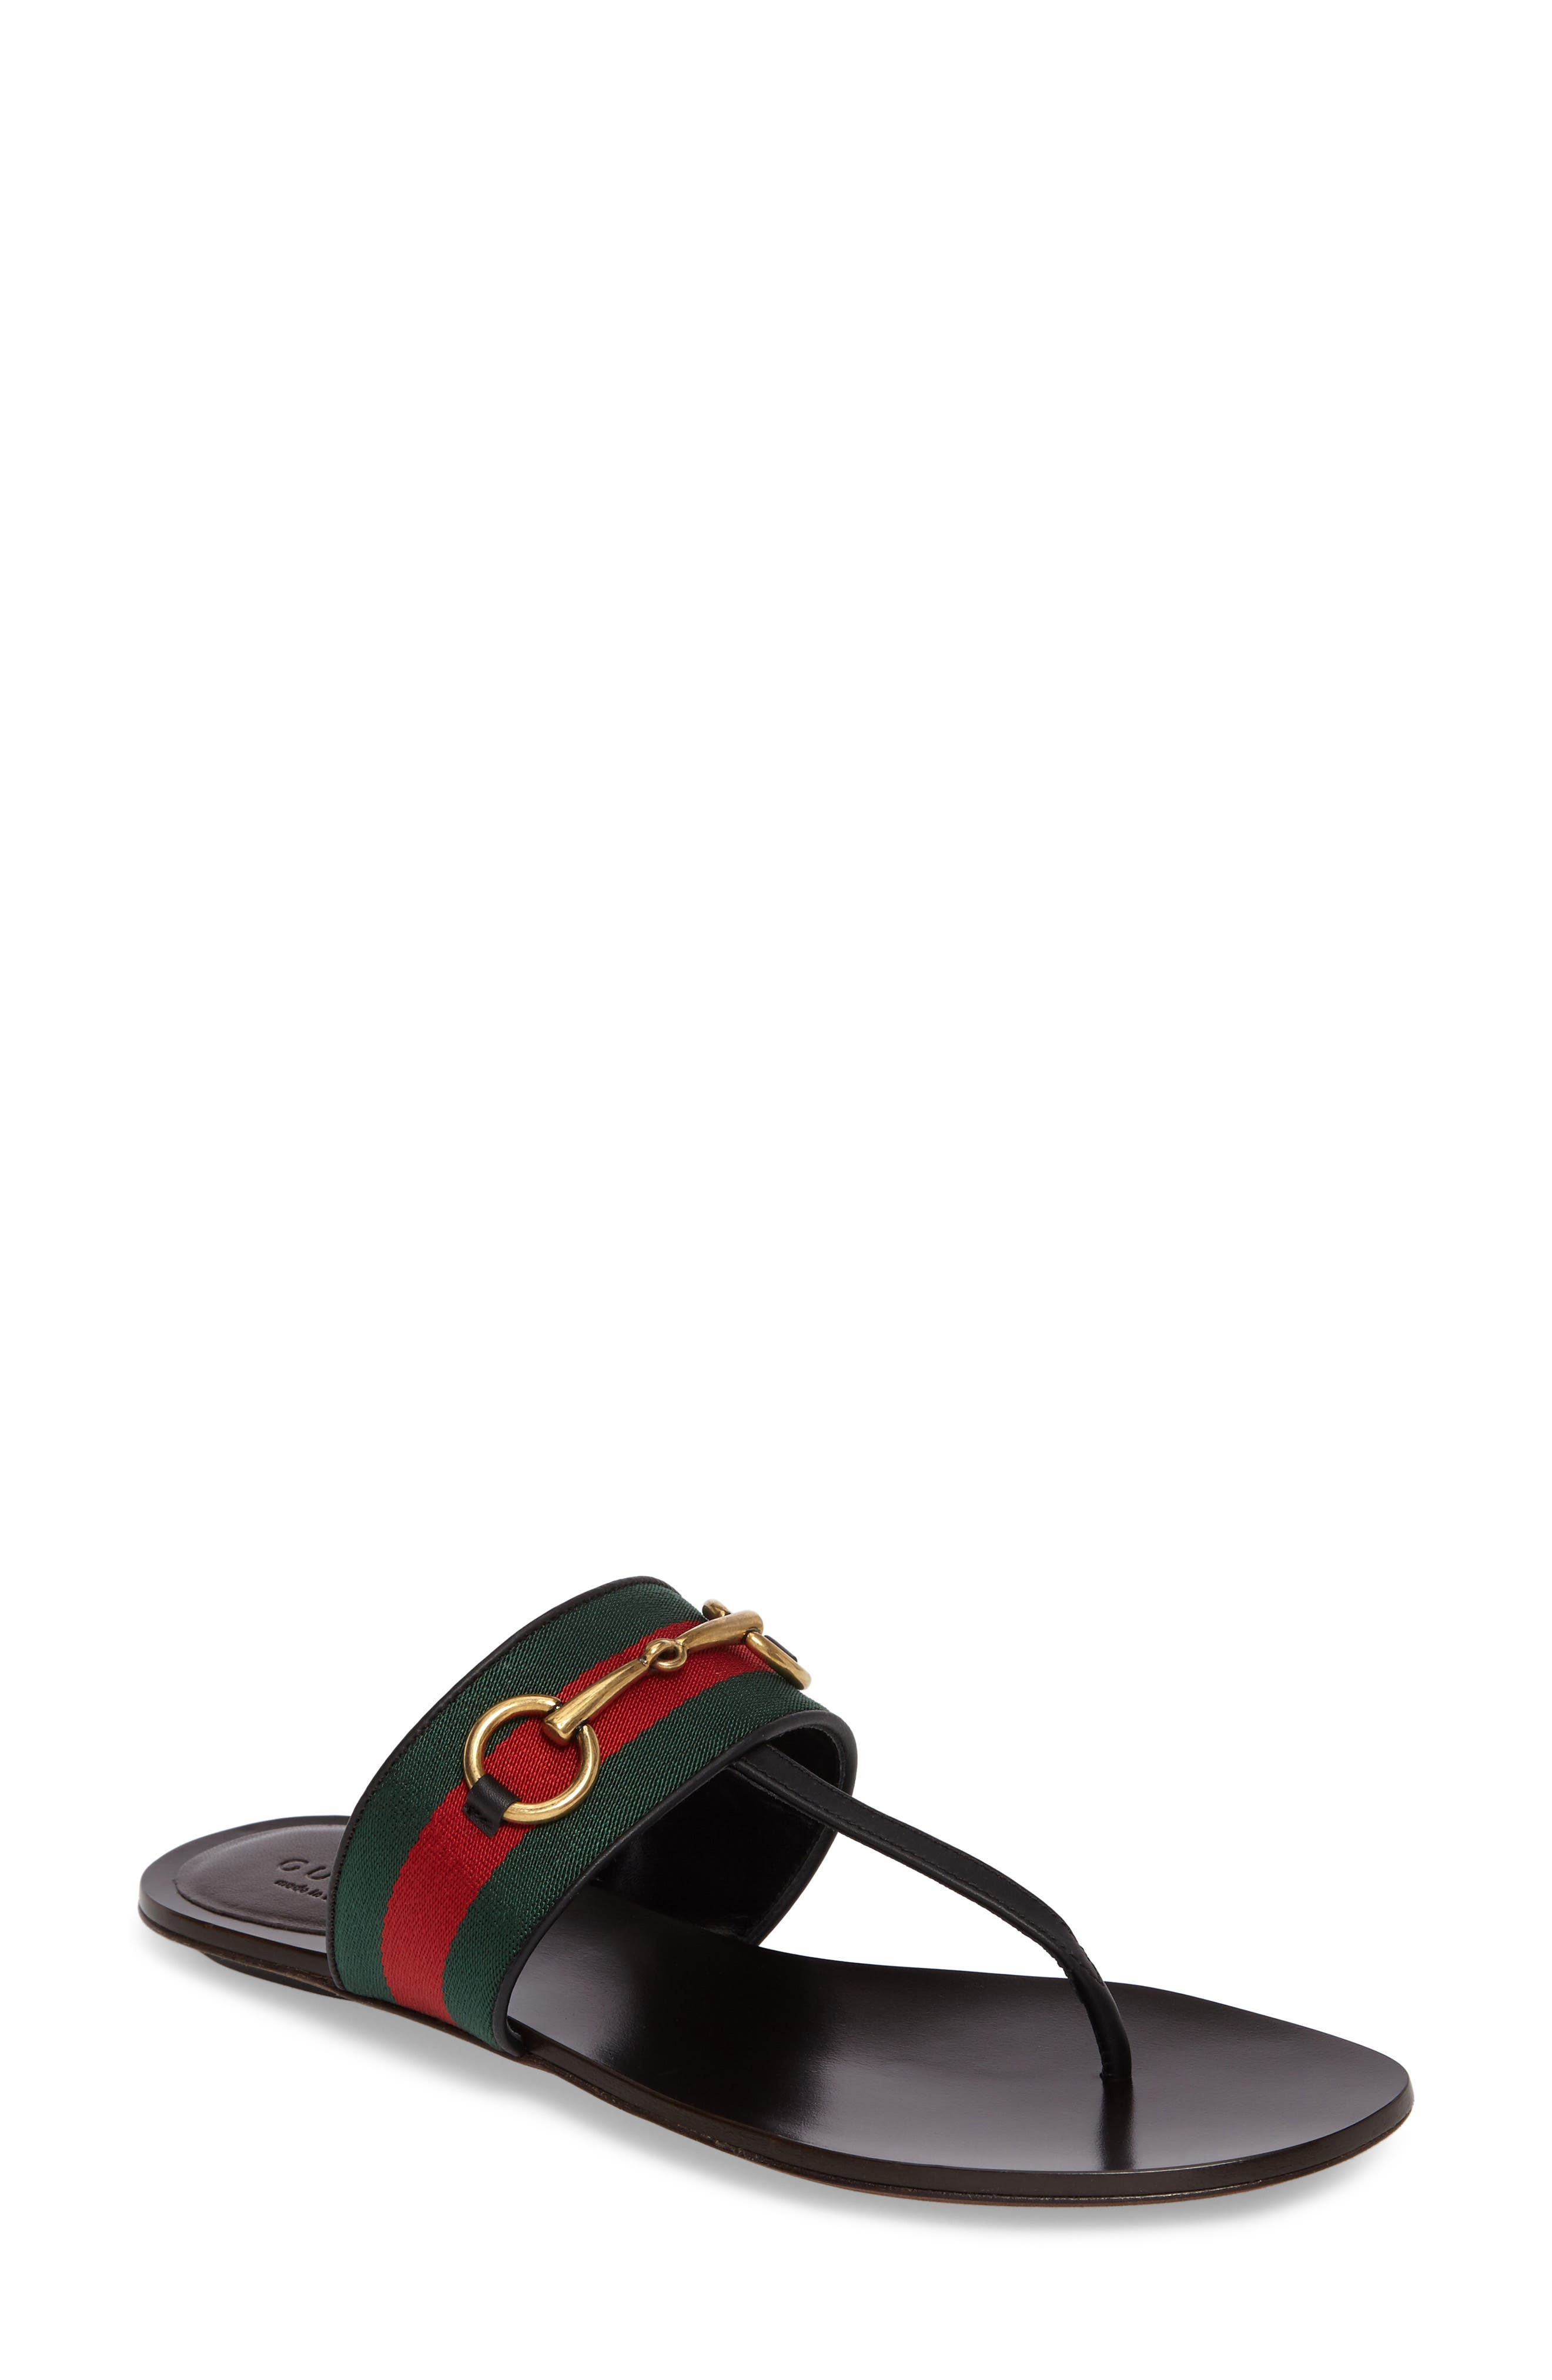 Alternate Image 1 Selected - Gucci Querelle Sandal (Women)